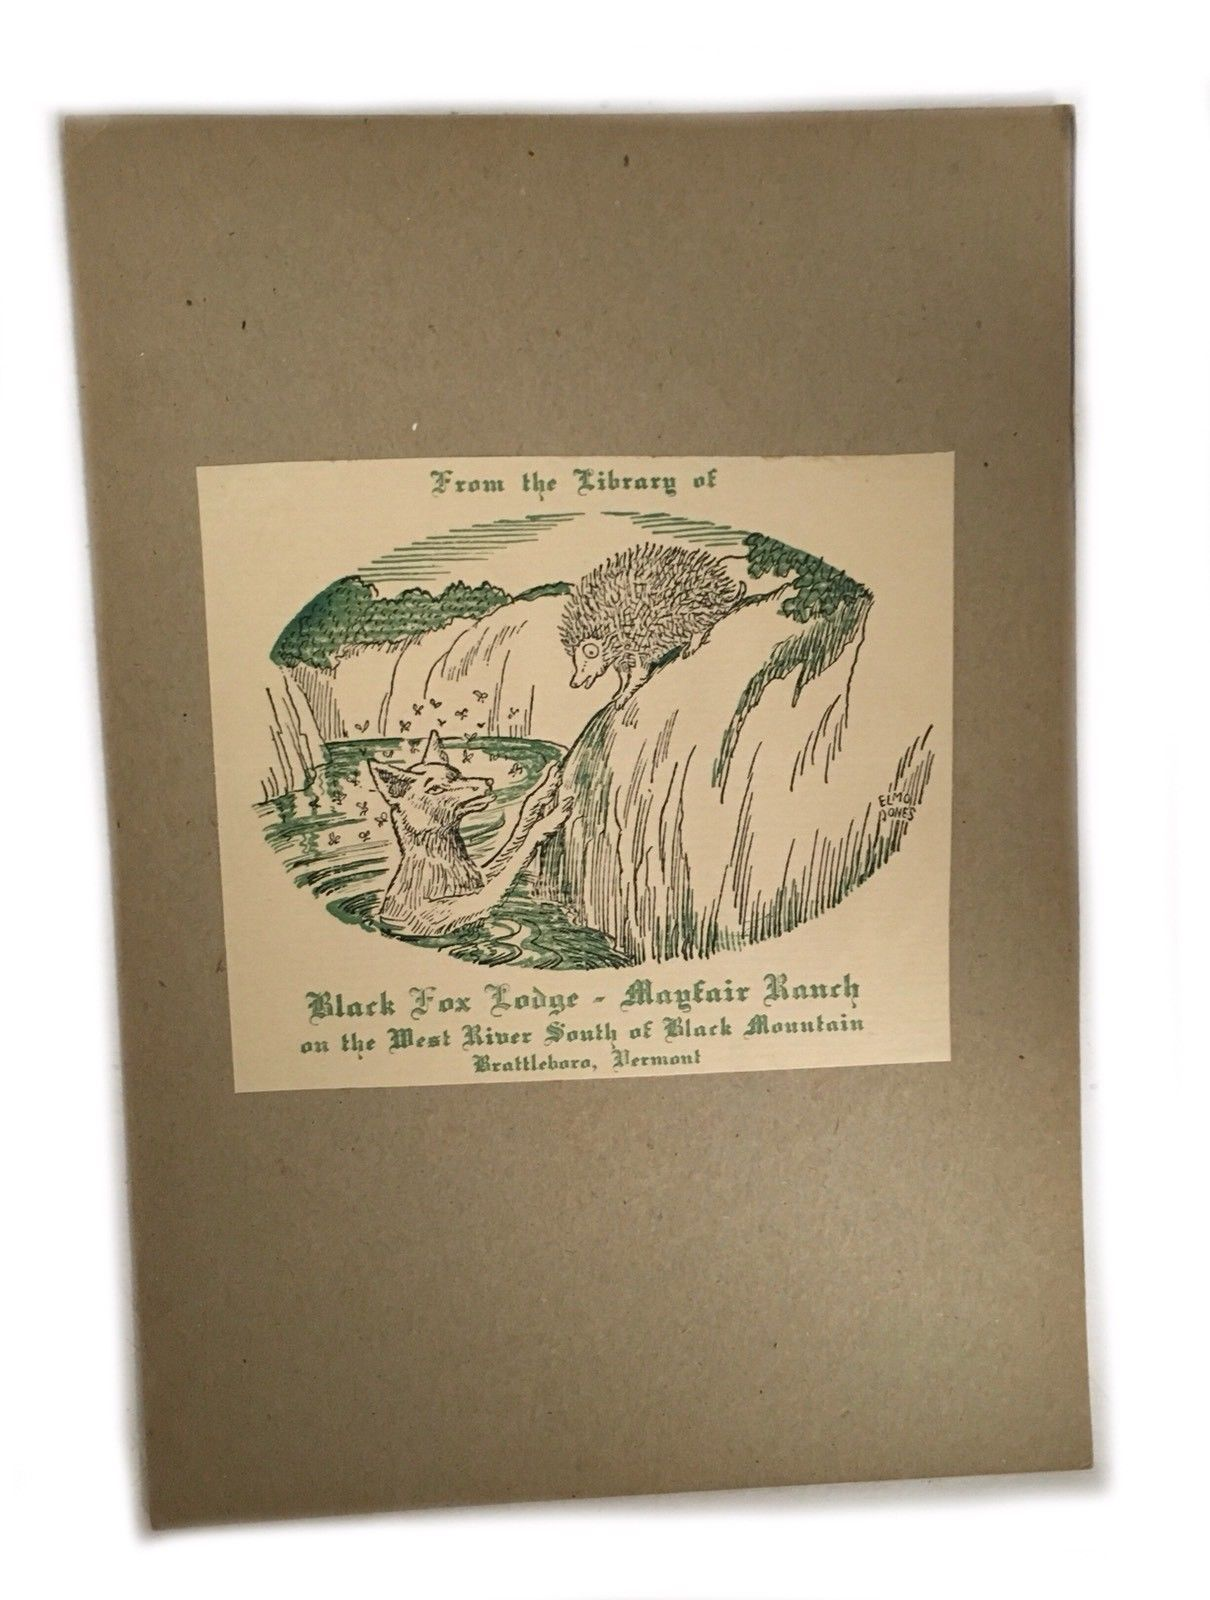 Ex Libris Book Plate Exlibris Black Fox Lodge Mayfair Ranch Brattleboro Vermont